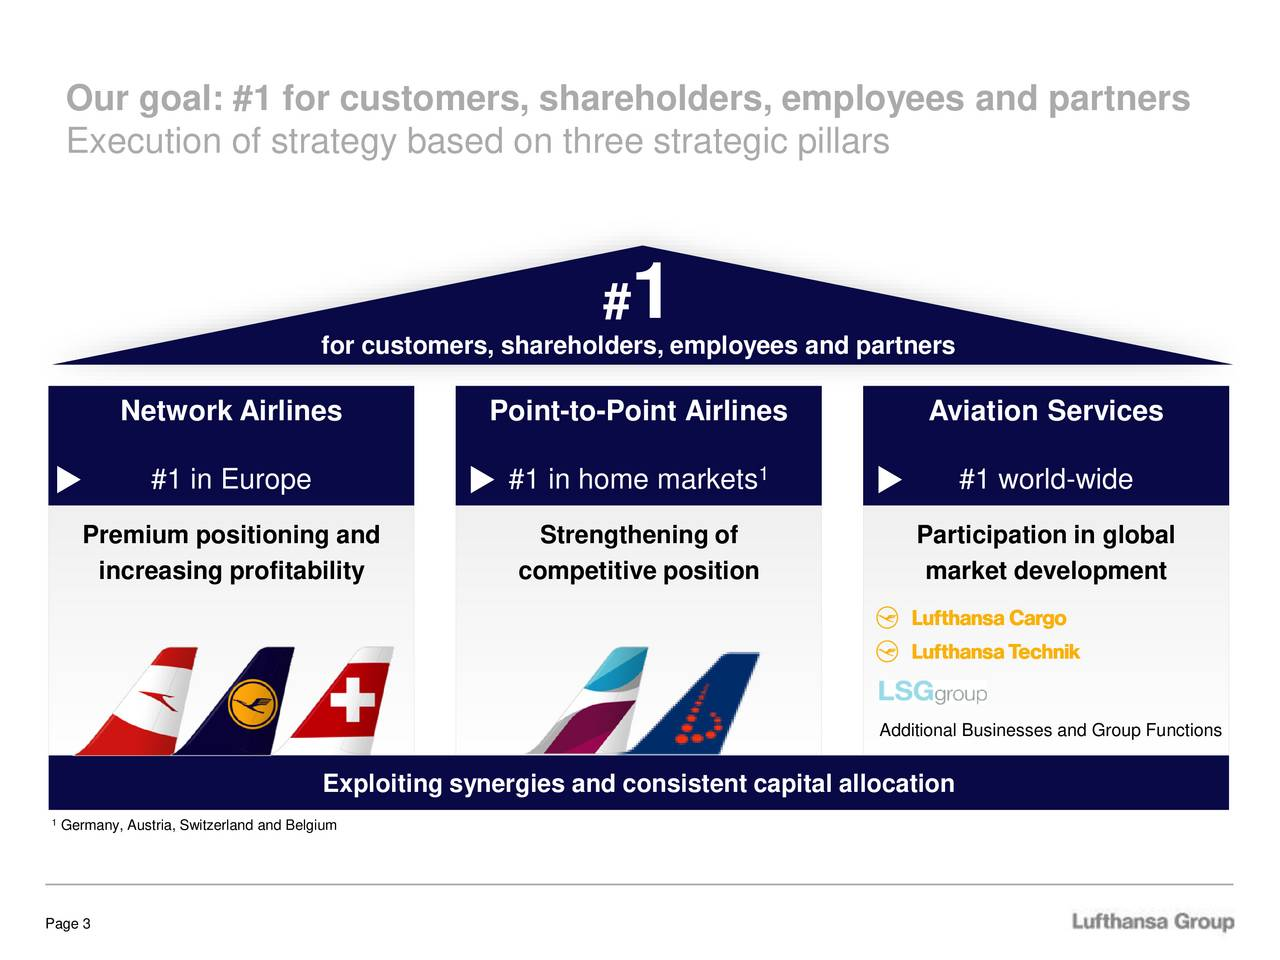 Execution of strategy based on three strategic pillars # 1 for customers, shareholders, employees and partners Network Airlines Point-to-Point Airlines Aviation Services #1 in Europe #1 in home markets1 #1 world-wide Premium positioning and Strengthening of Participation in global increasing profitability competitive position market development Additional Businesses and Group Functions Exploiting synergies and consistent capital allocation 1Germany, Austria, Switzerland and Belgium Page 3